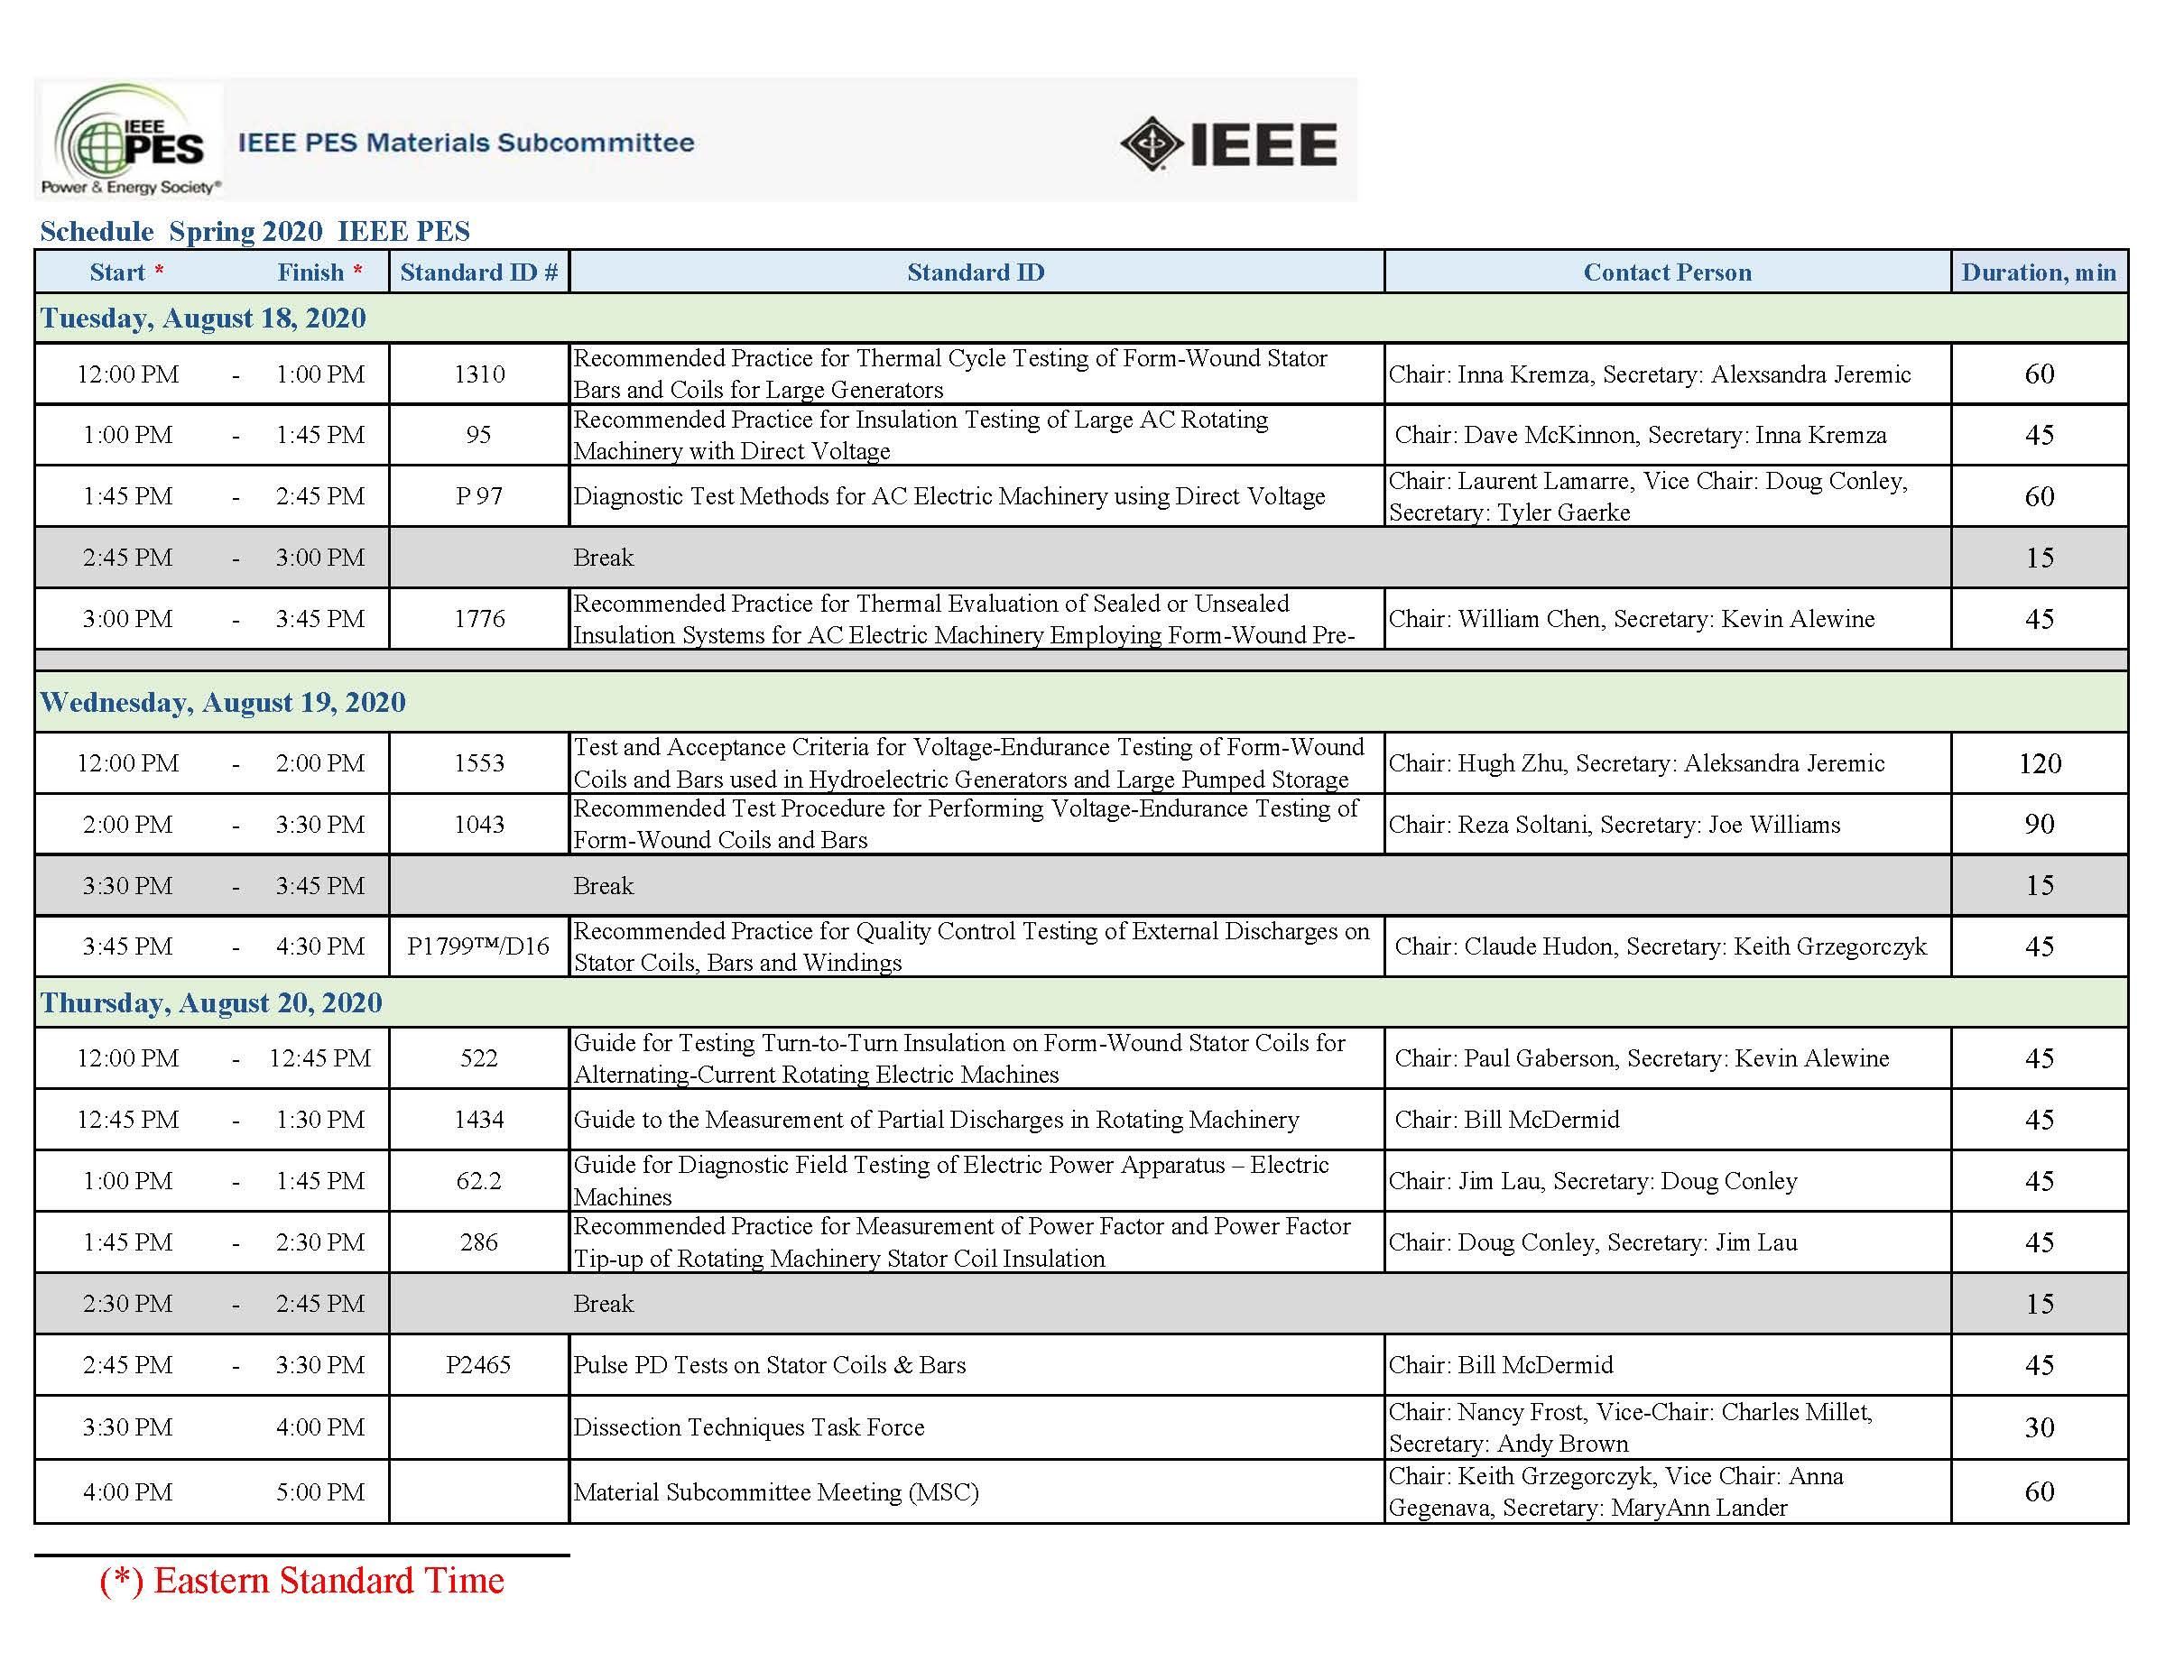 2020 IEEE MSC Spring schedule Rev 7